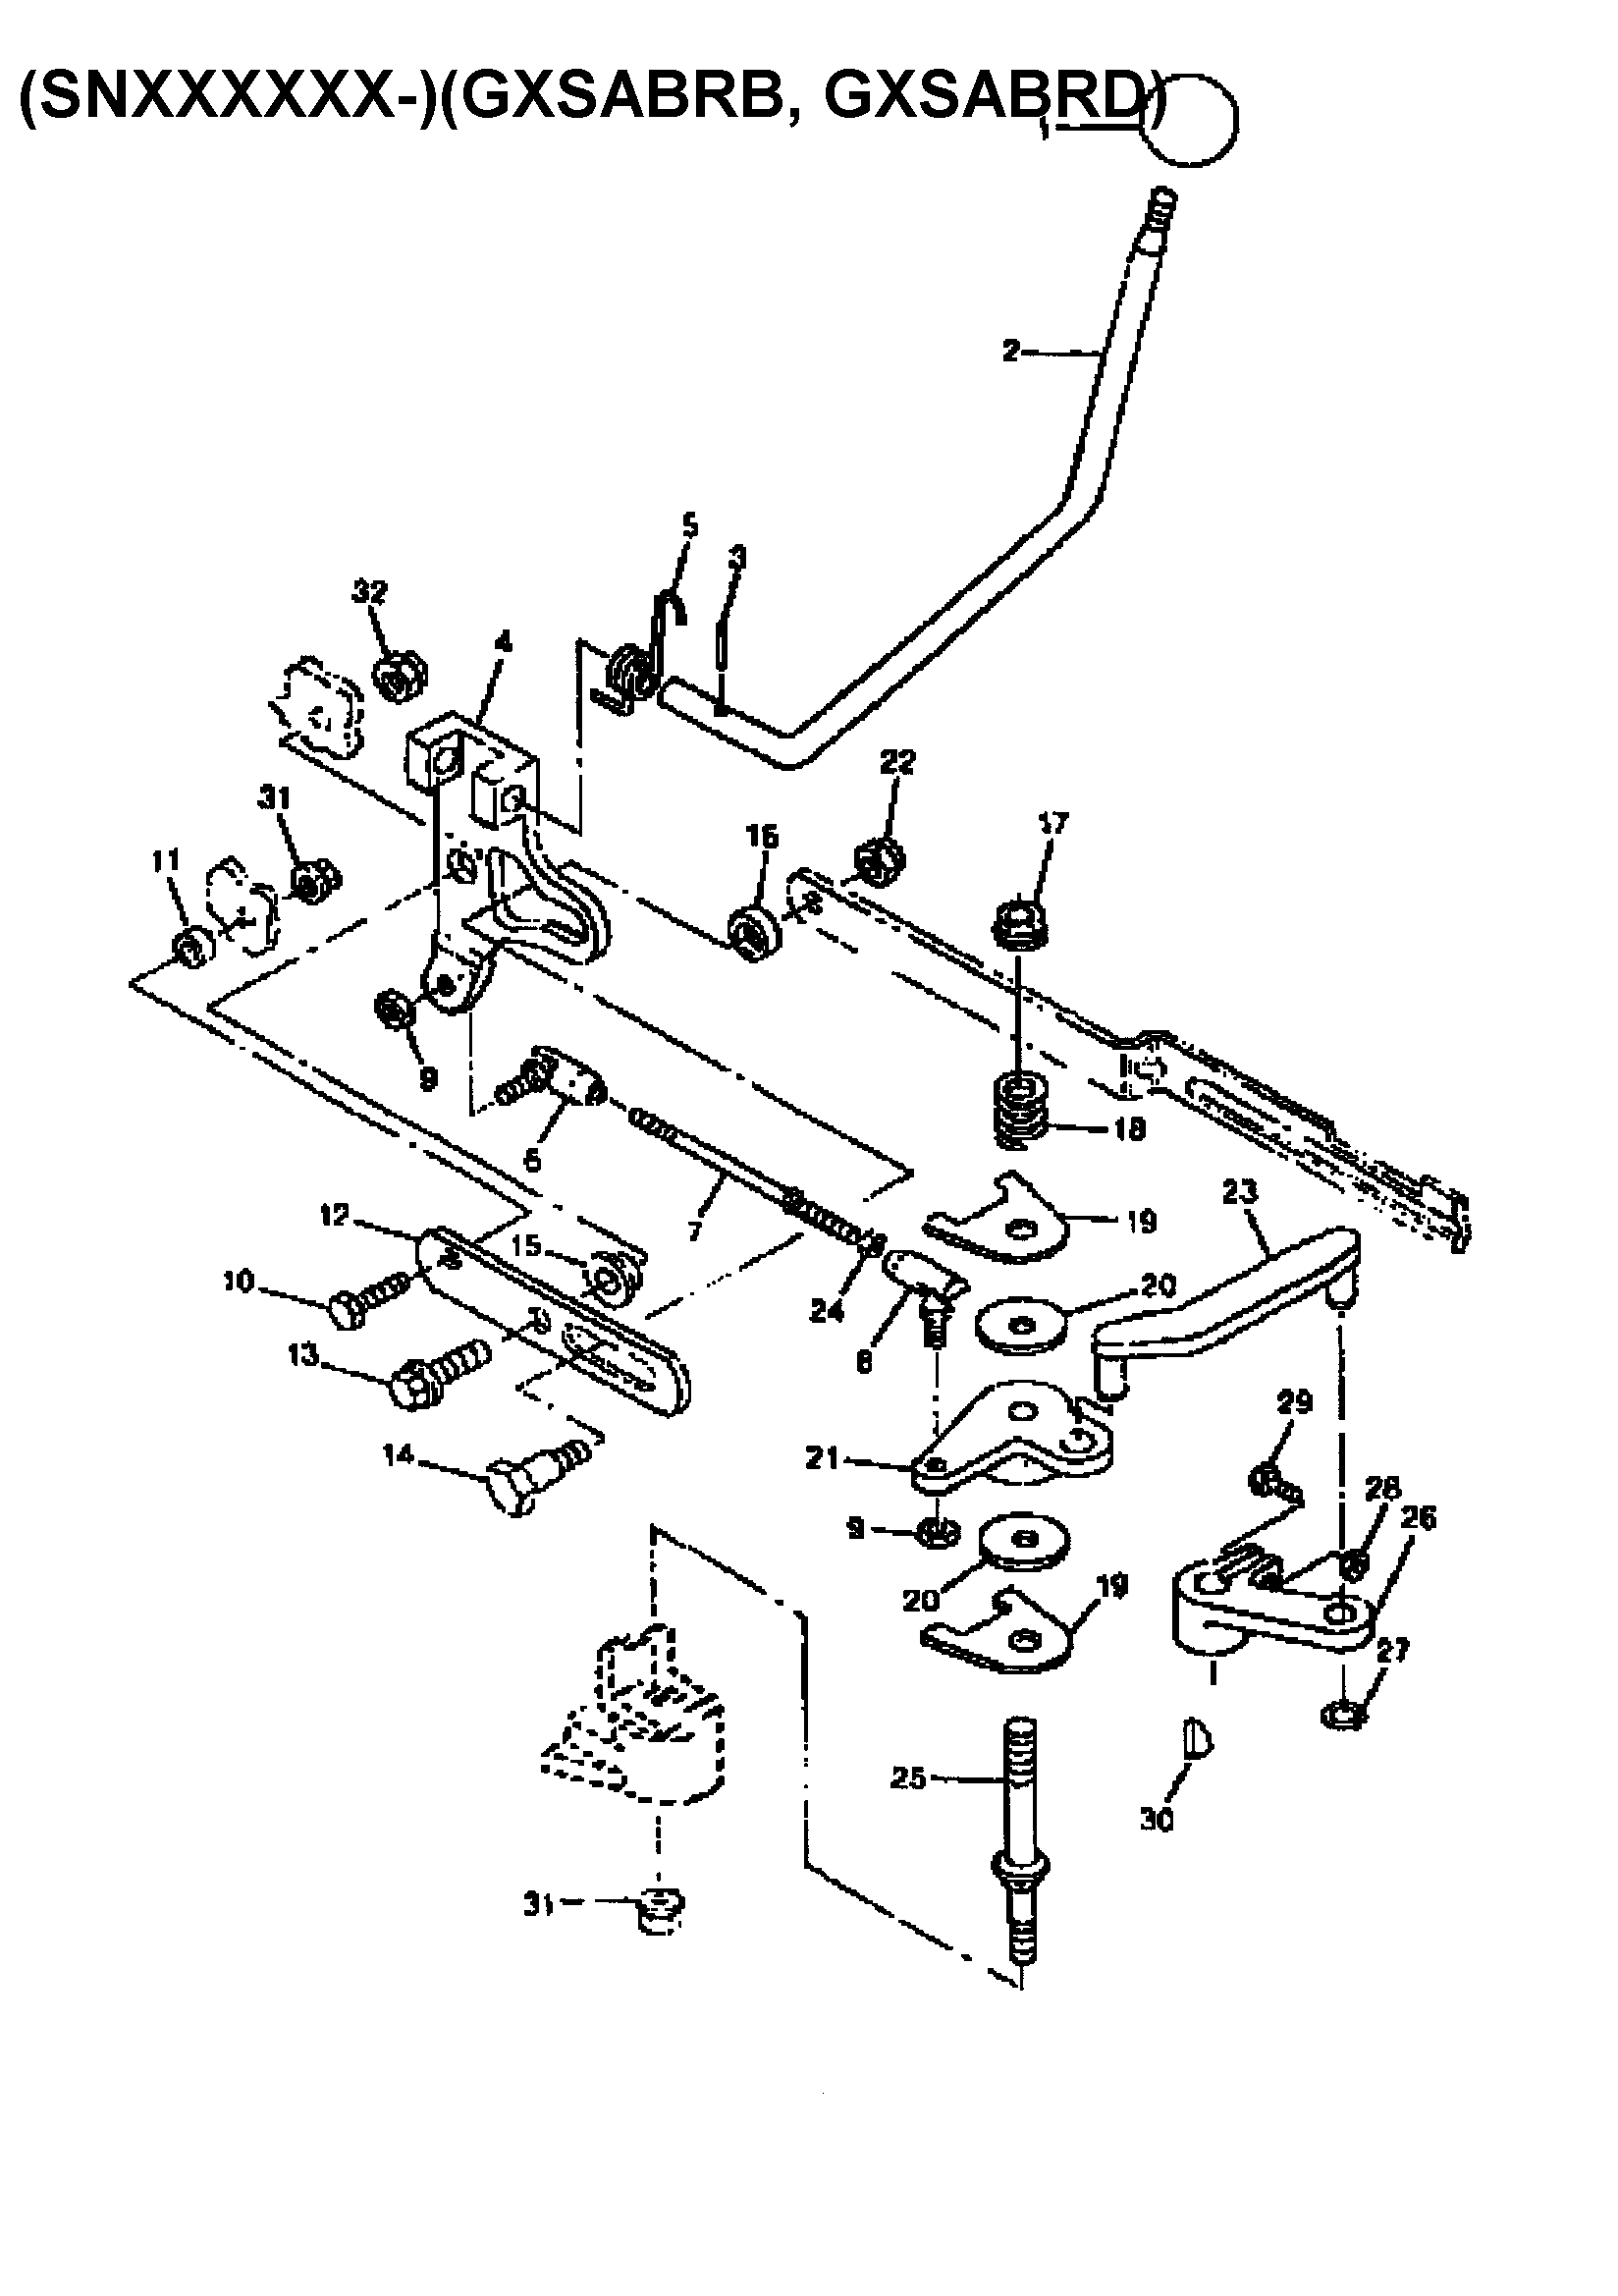 hight resolution of john deere positive ground wiring diagram